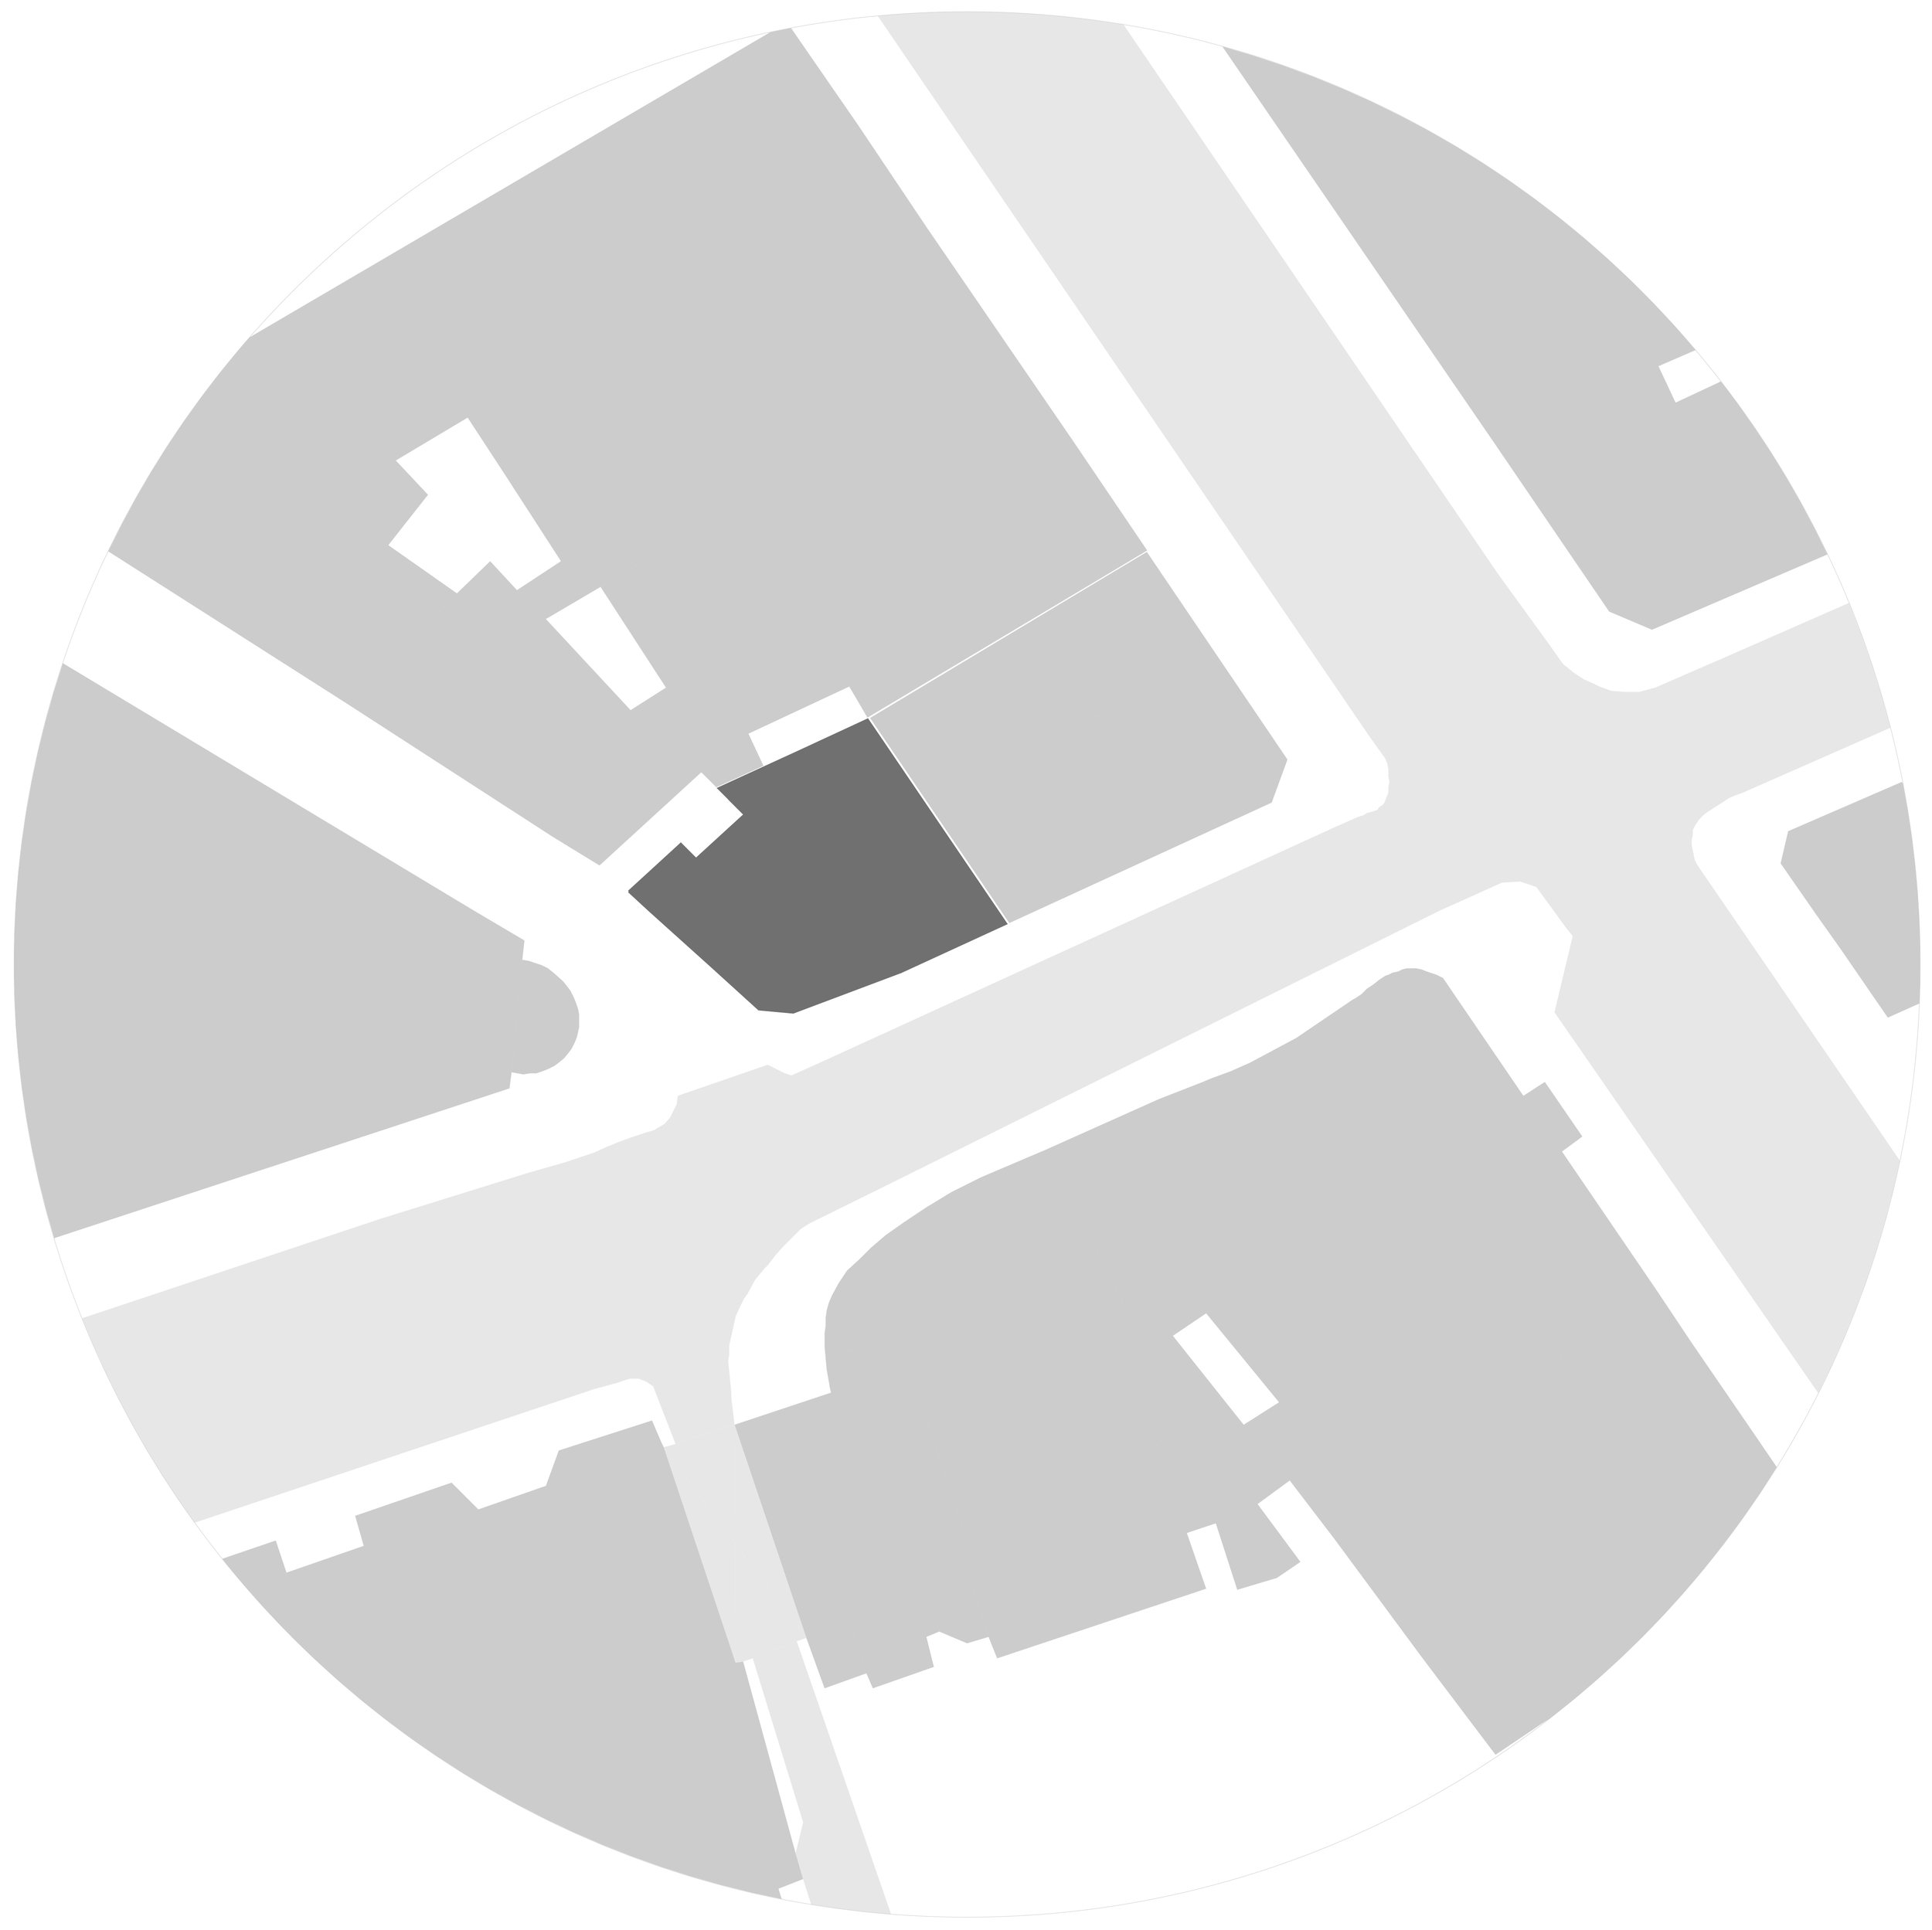 1115_grosvenor_locationplan.jpg